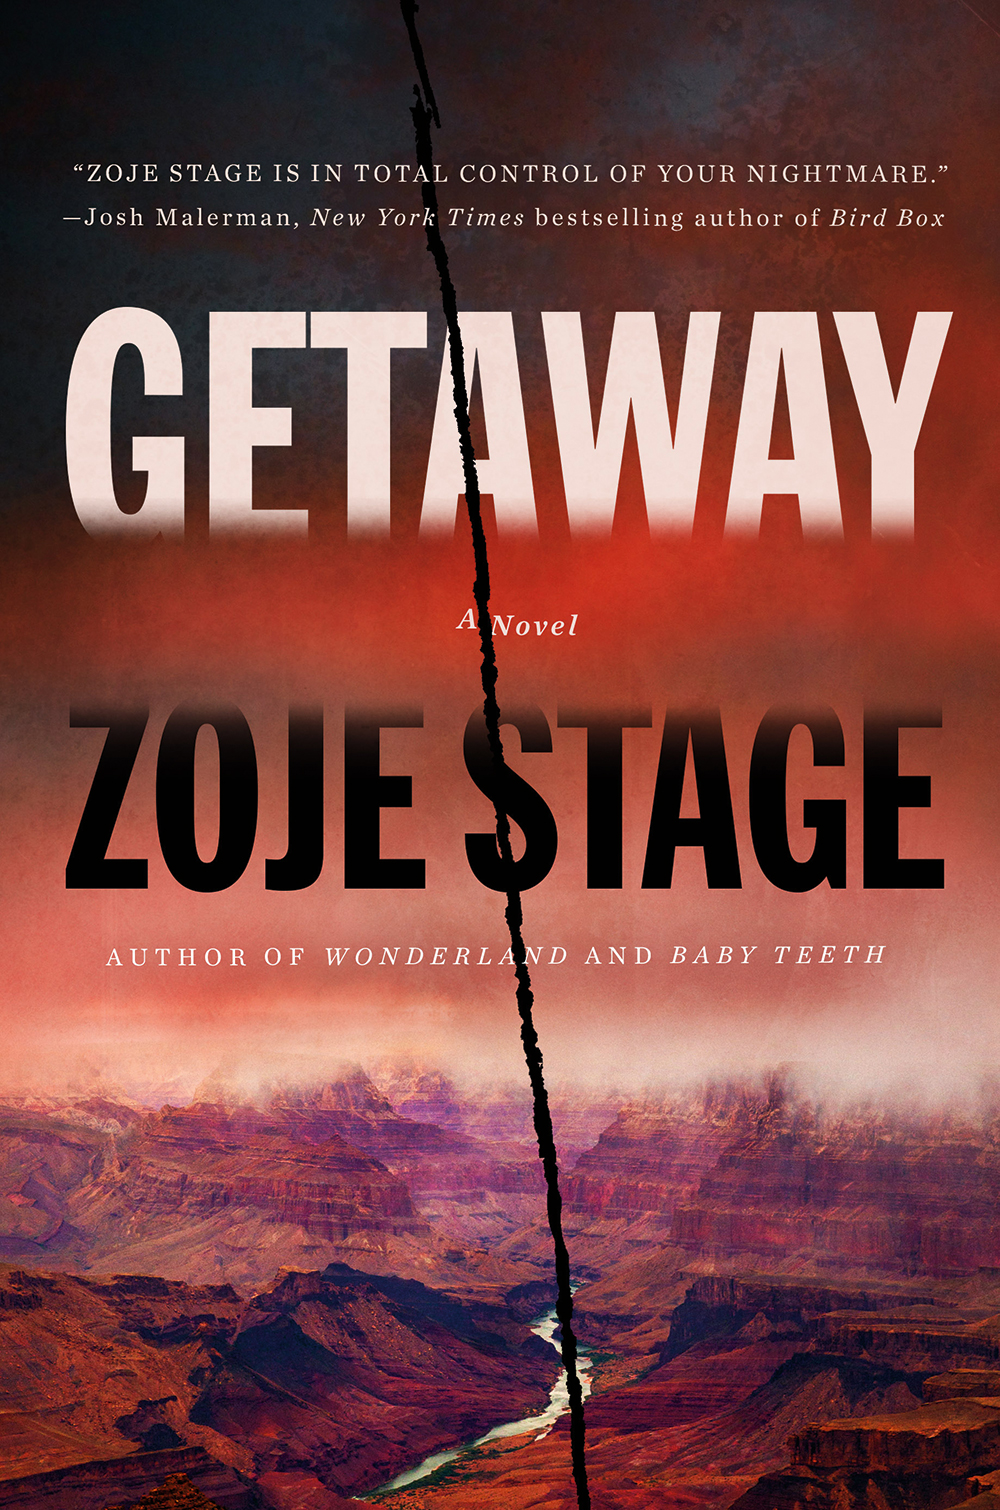 Getaway Release Date? Zoje Stage 2021 New Releases